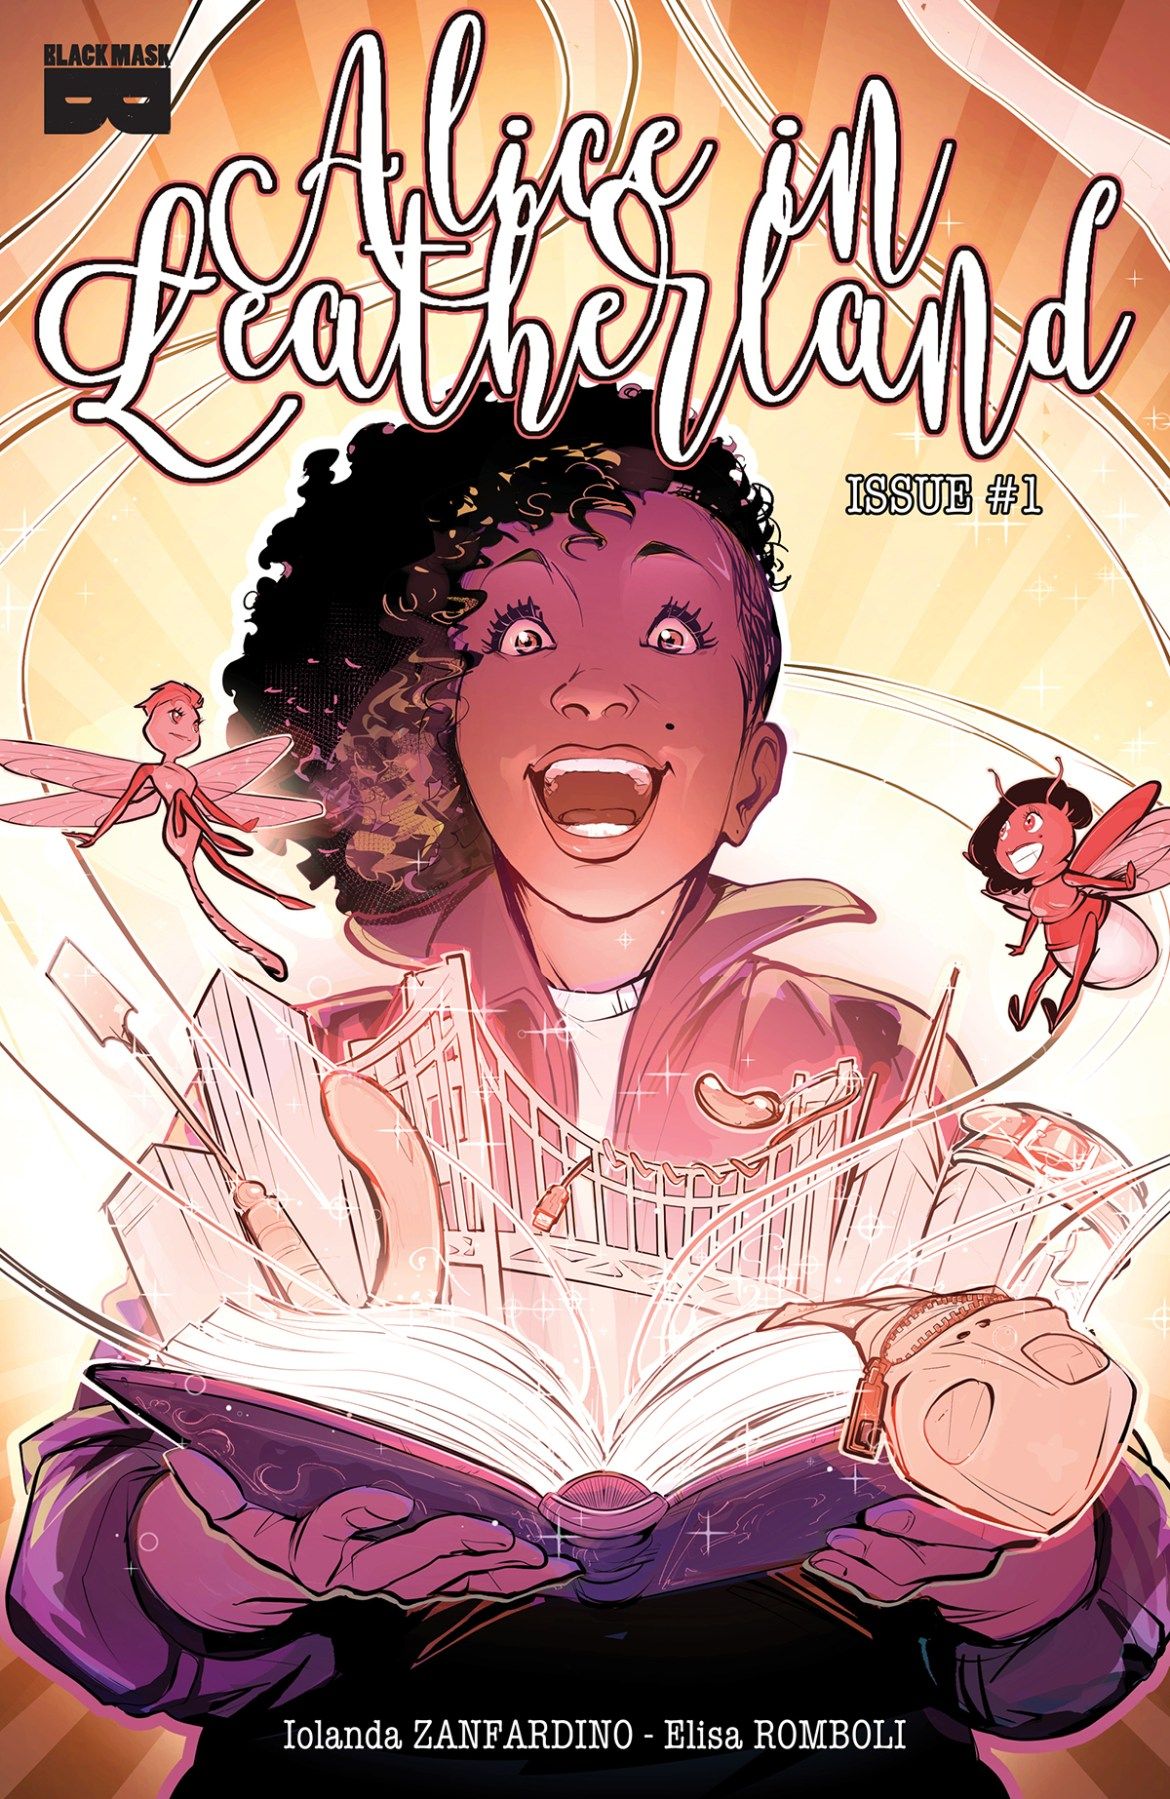 577c4f2f-cd9f-47cd-945d-517d6a41d860 ComicList Previews: ALICE IN LEATHERLAND #1